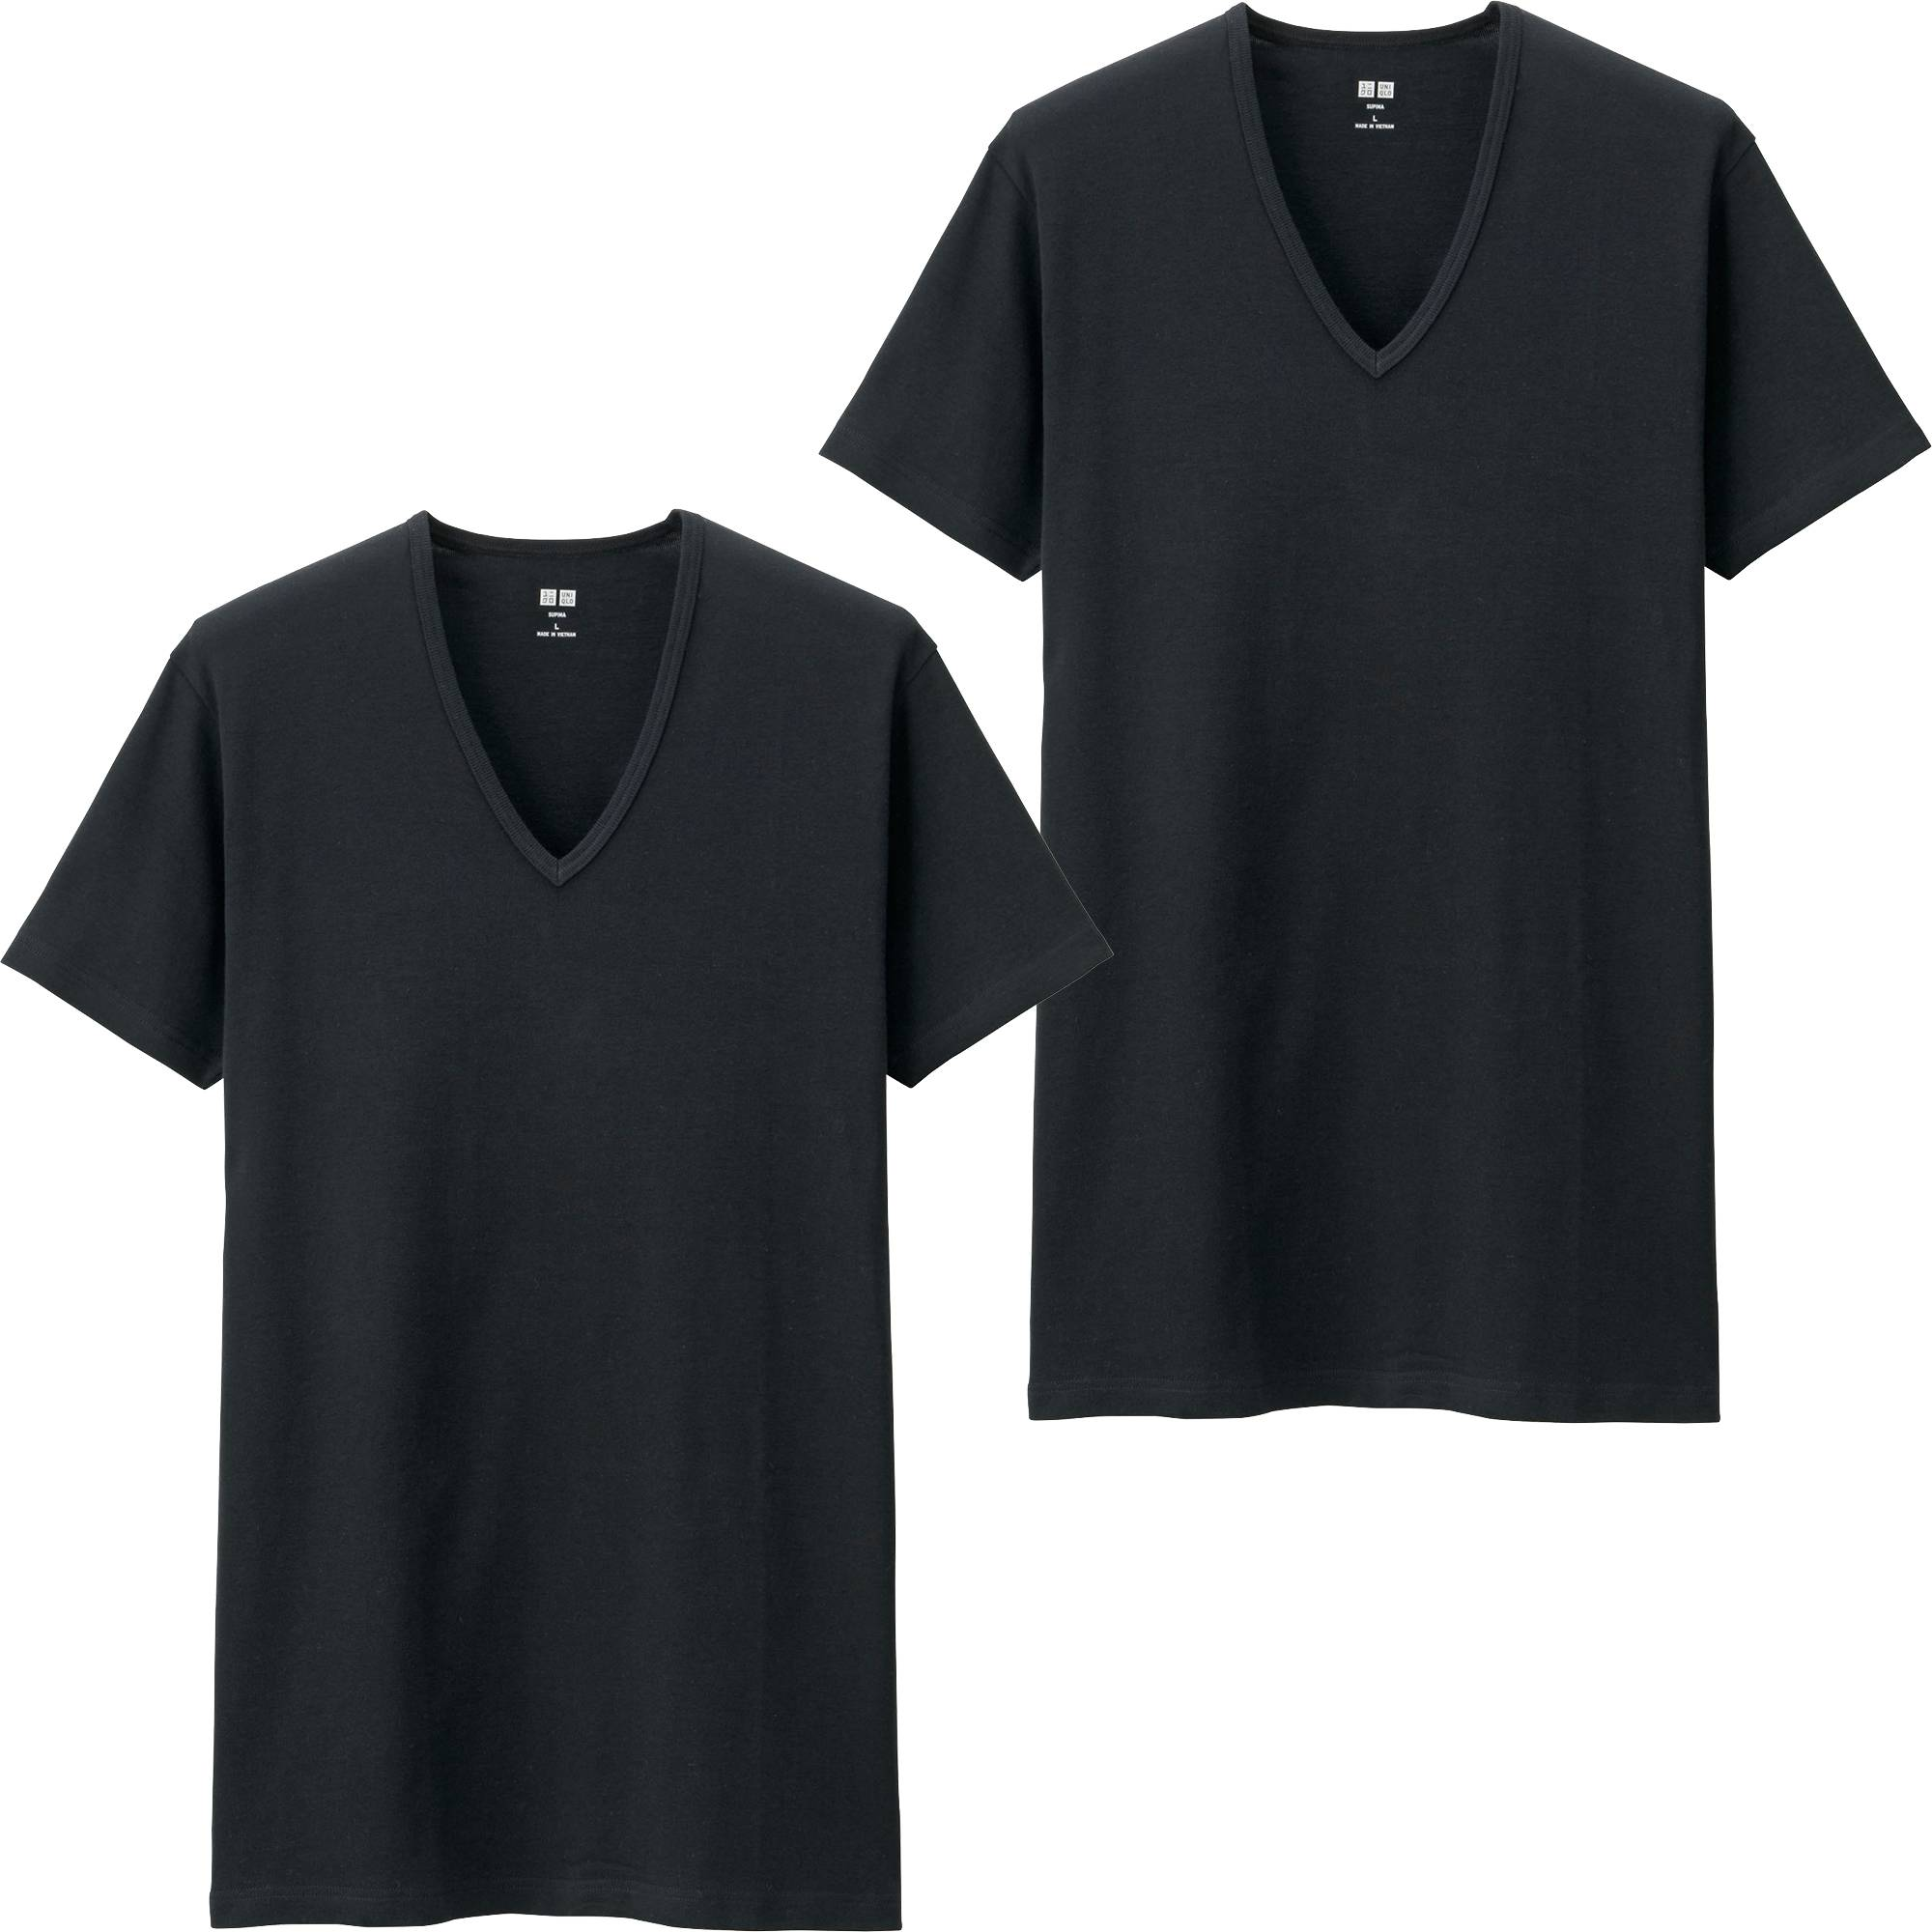 Black t shirt white collar - Men Supima Cotton T Shirt 2 Pack Black Large